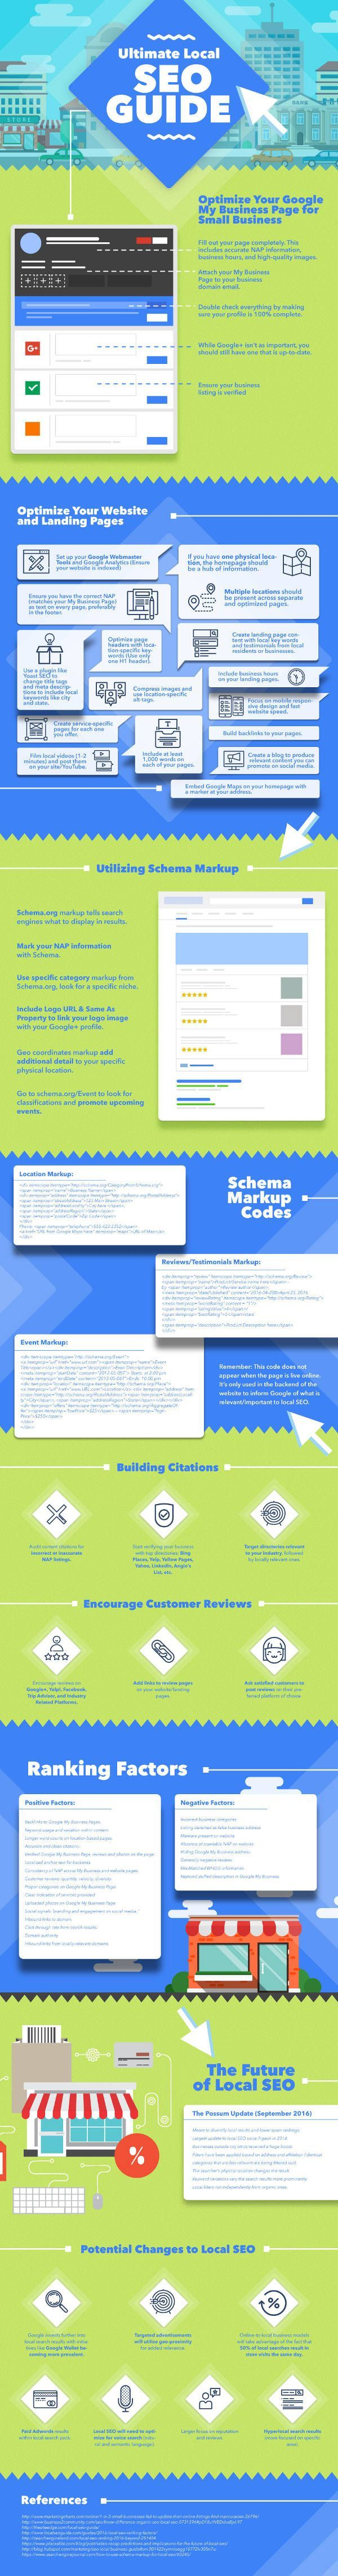 Search Engine Marketing - The Ultimate Local SEO Guide [Infographic] - @marketingprofs